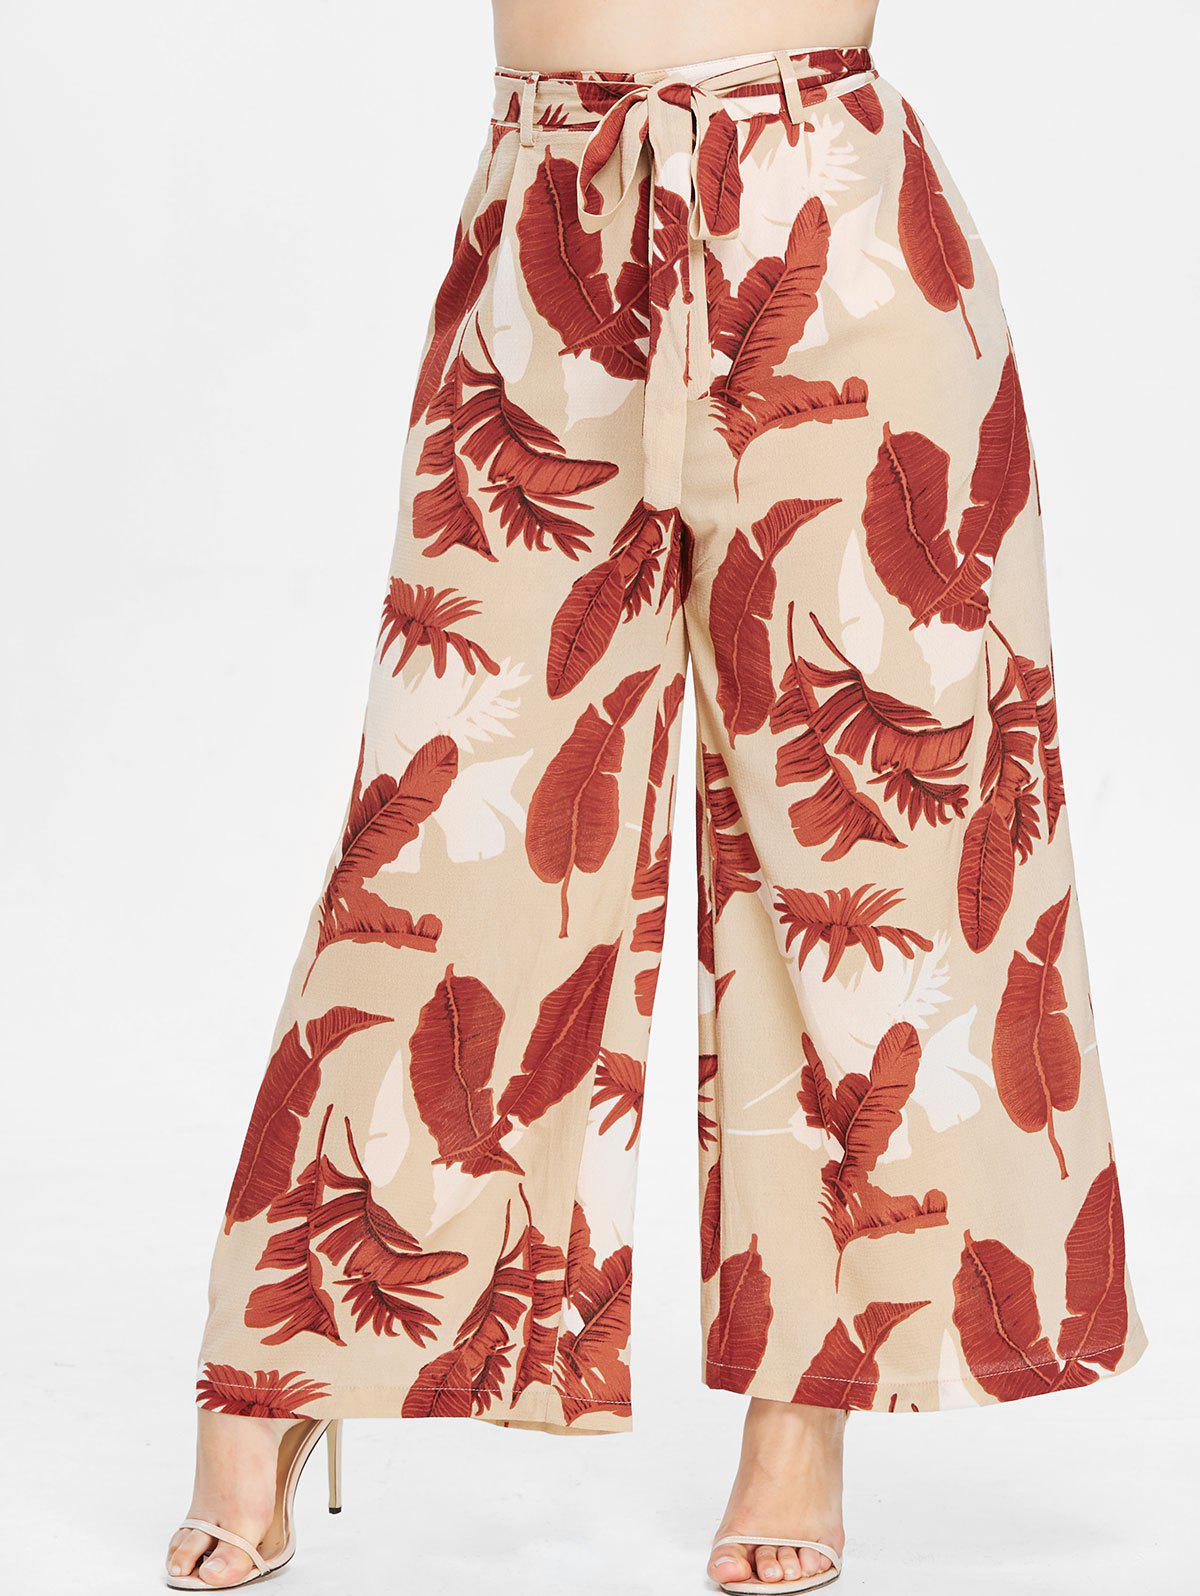 ZAFUL Plus Size Print Wide Leg Palazzo Pants, Multi